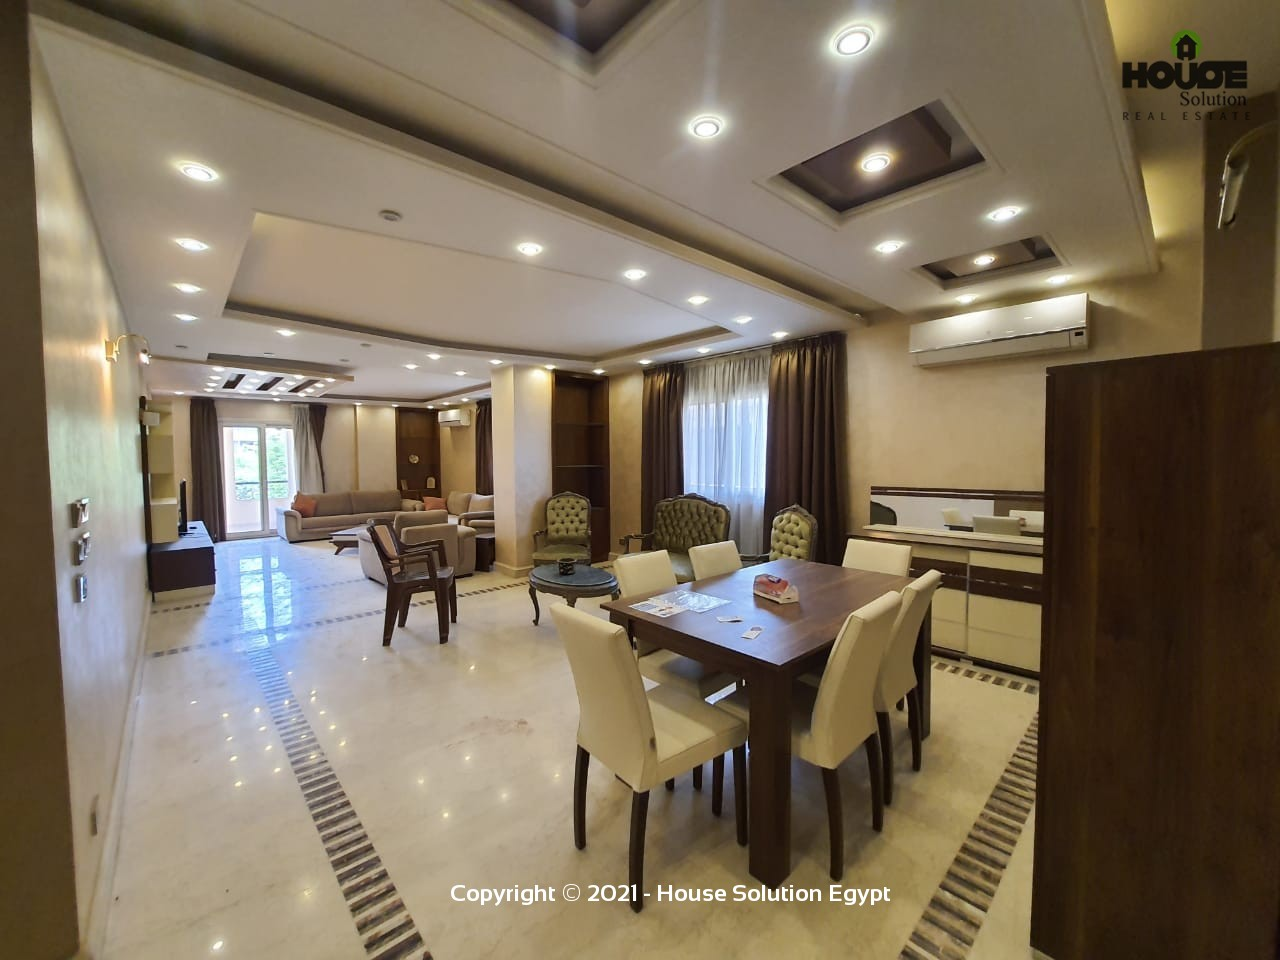 Stunning Modern Furnished Apartment For Rent In Sarayat El Maadi Cairo Egypt - 5007 Featured Image